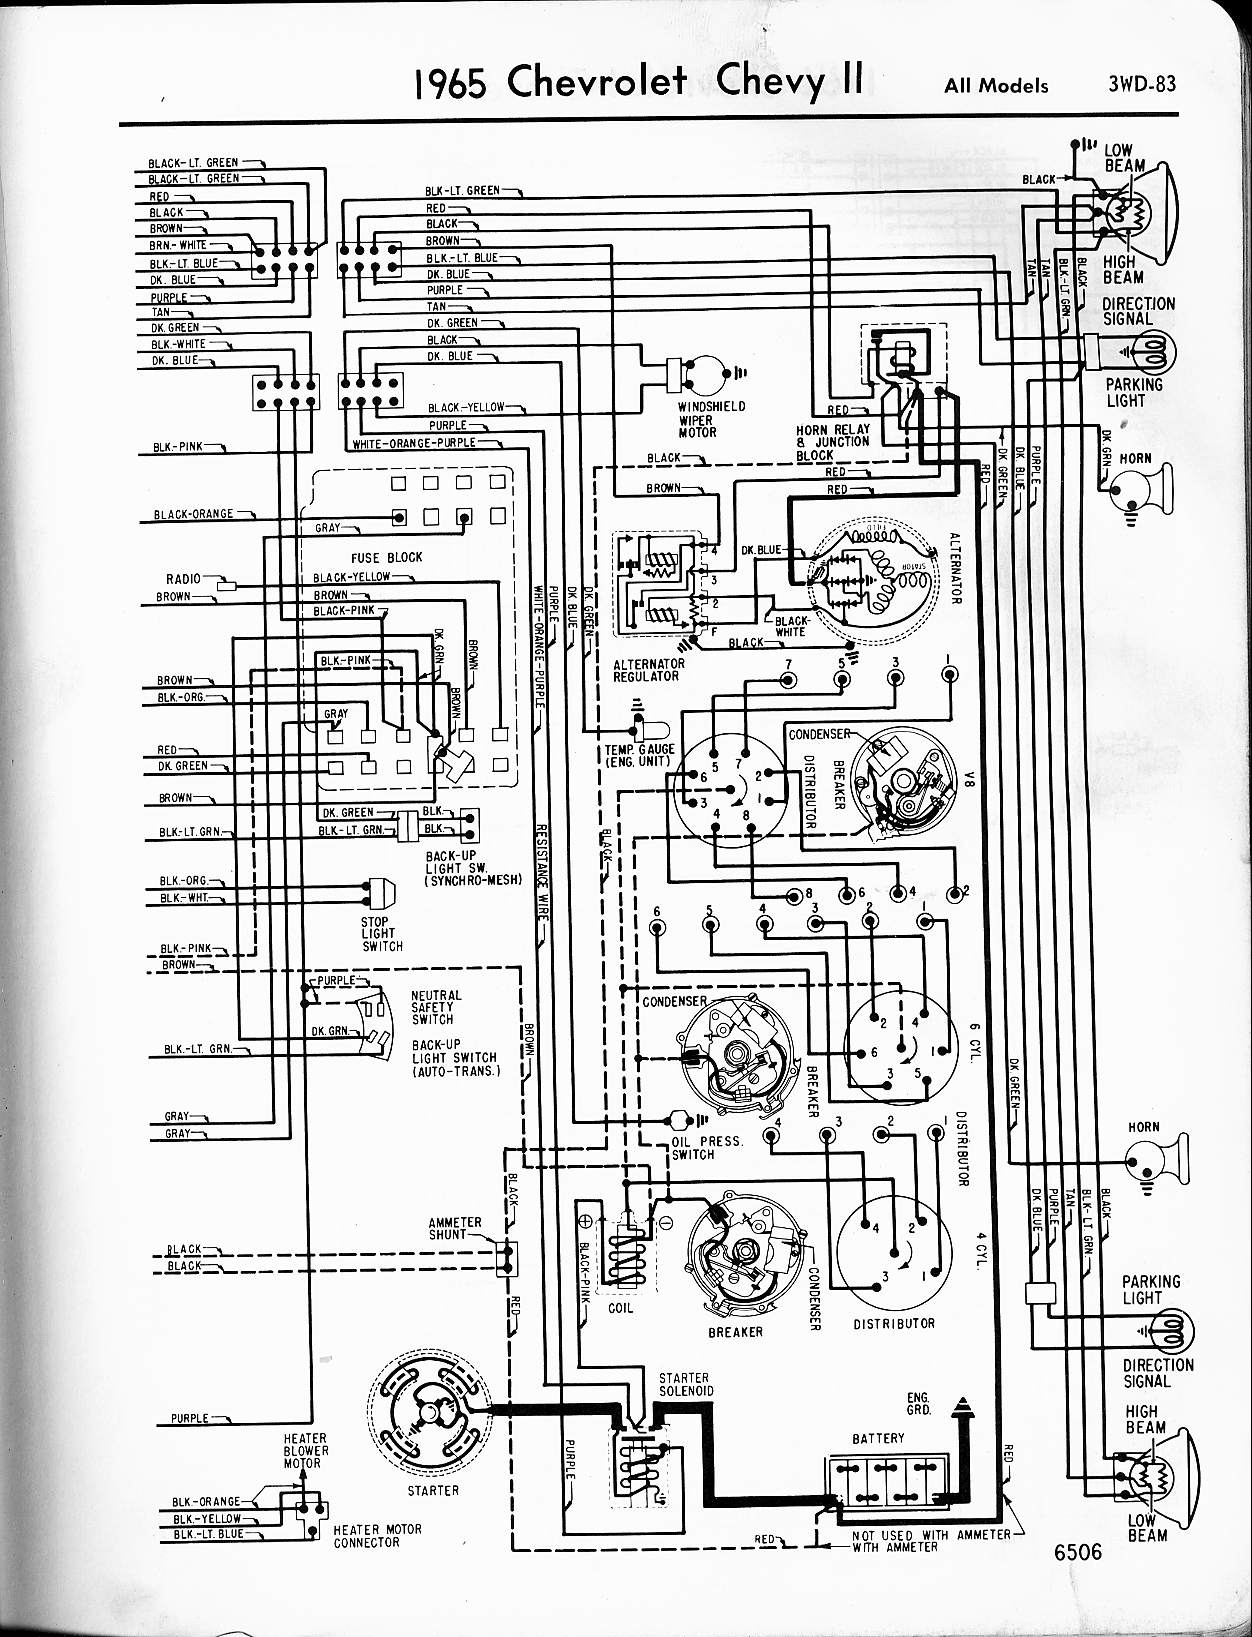 1971 Chevy Impala Wiring Diagram Data 2002 Ignition Schematics 1965 Chevelle Free For You U2022